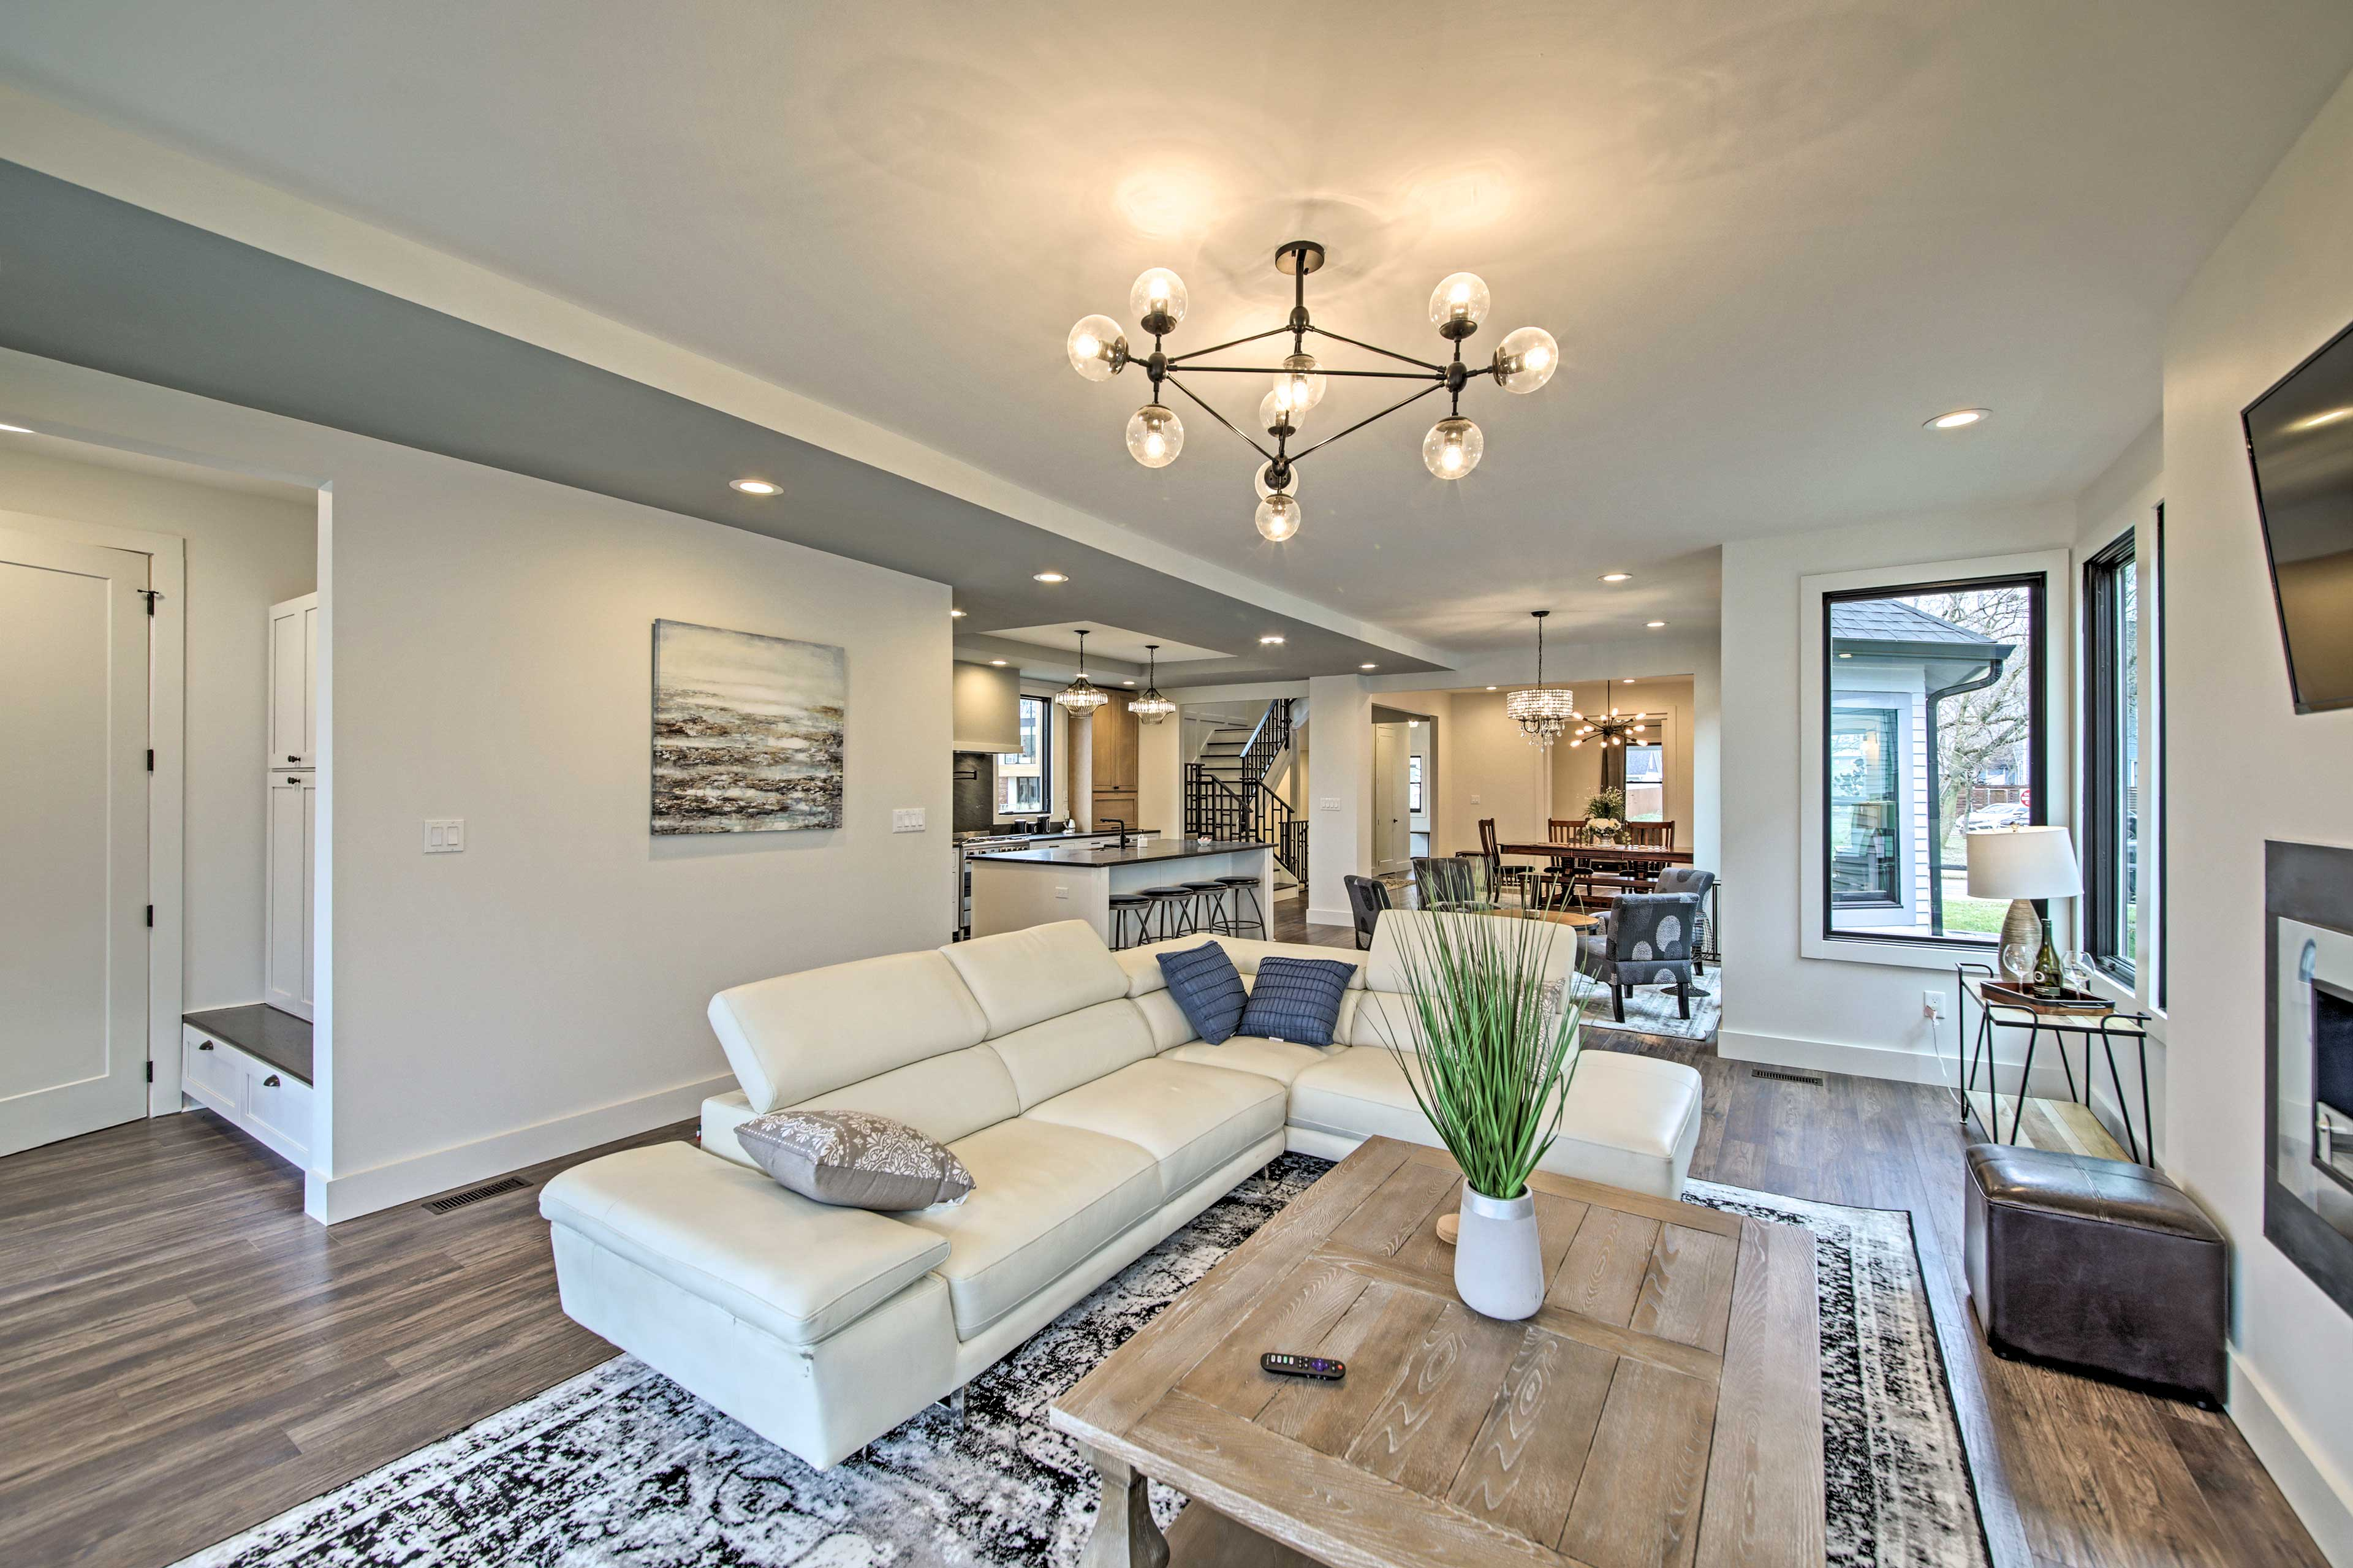 This grand Indianapolis home boasts a luxurious living space.